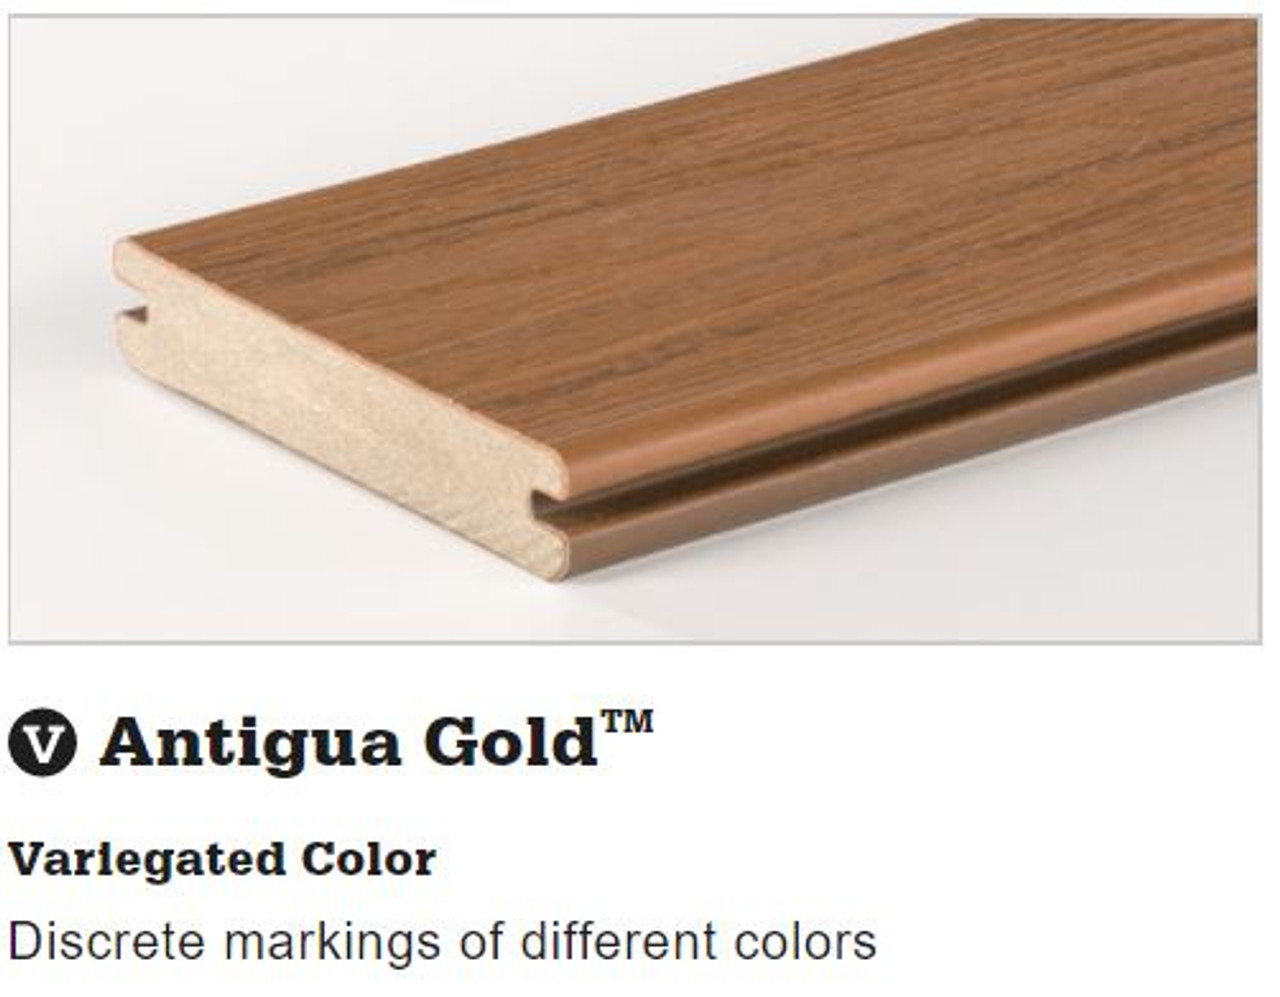 TimberTech Tropical Deck Board in Antigua Gold